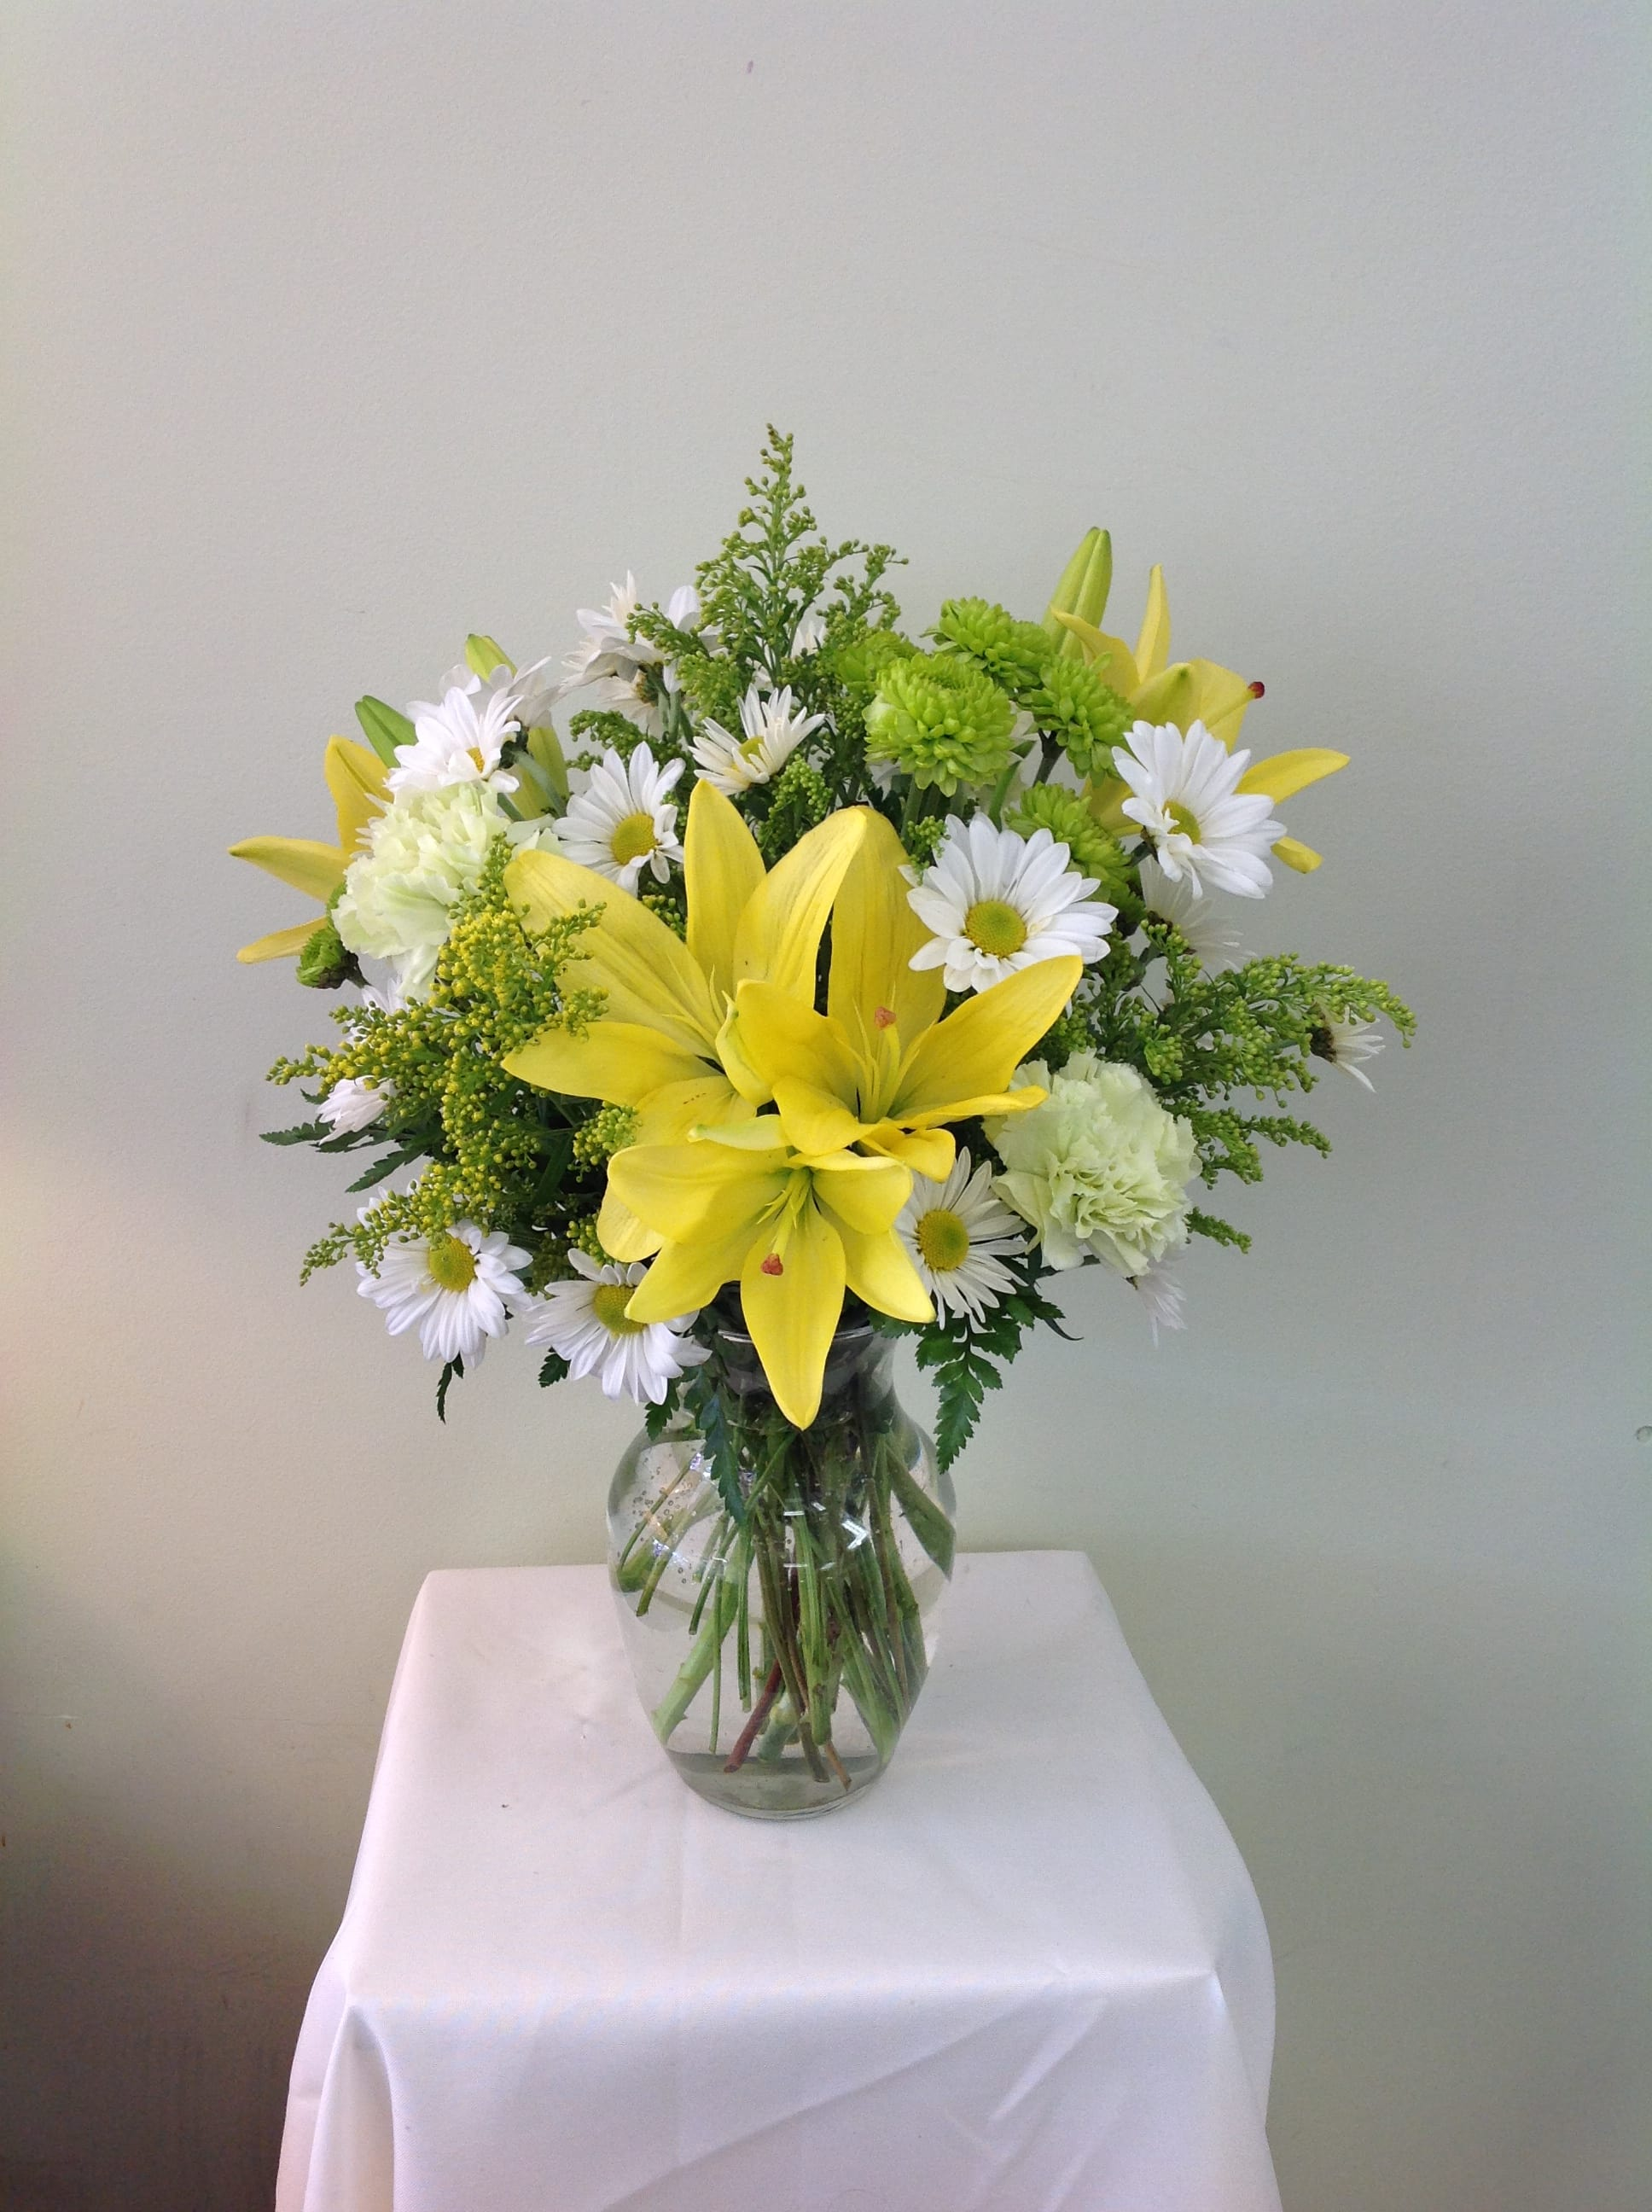 Sweet Simple Sunshine - Bright and cheerful mix of yellow and green flowers in a clear